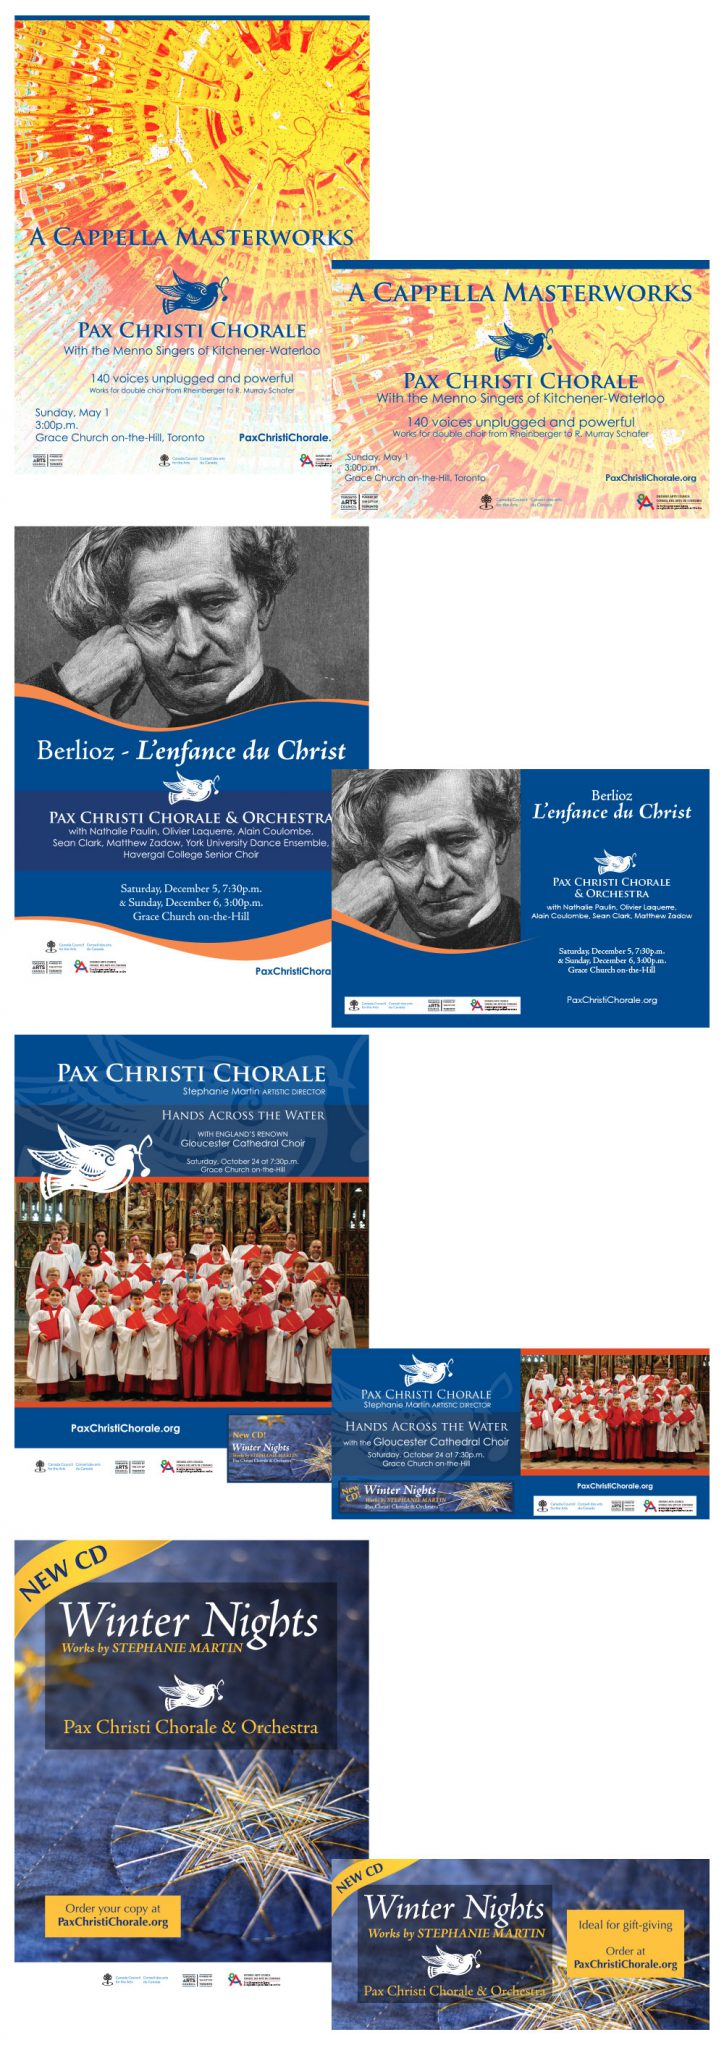 Selection of printed material for Pax Christi's concert series.